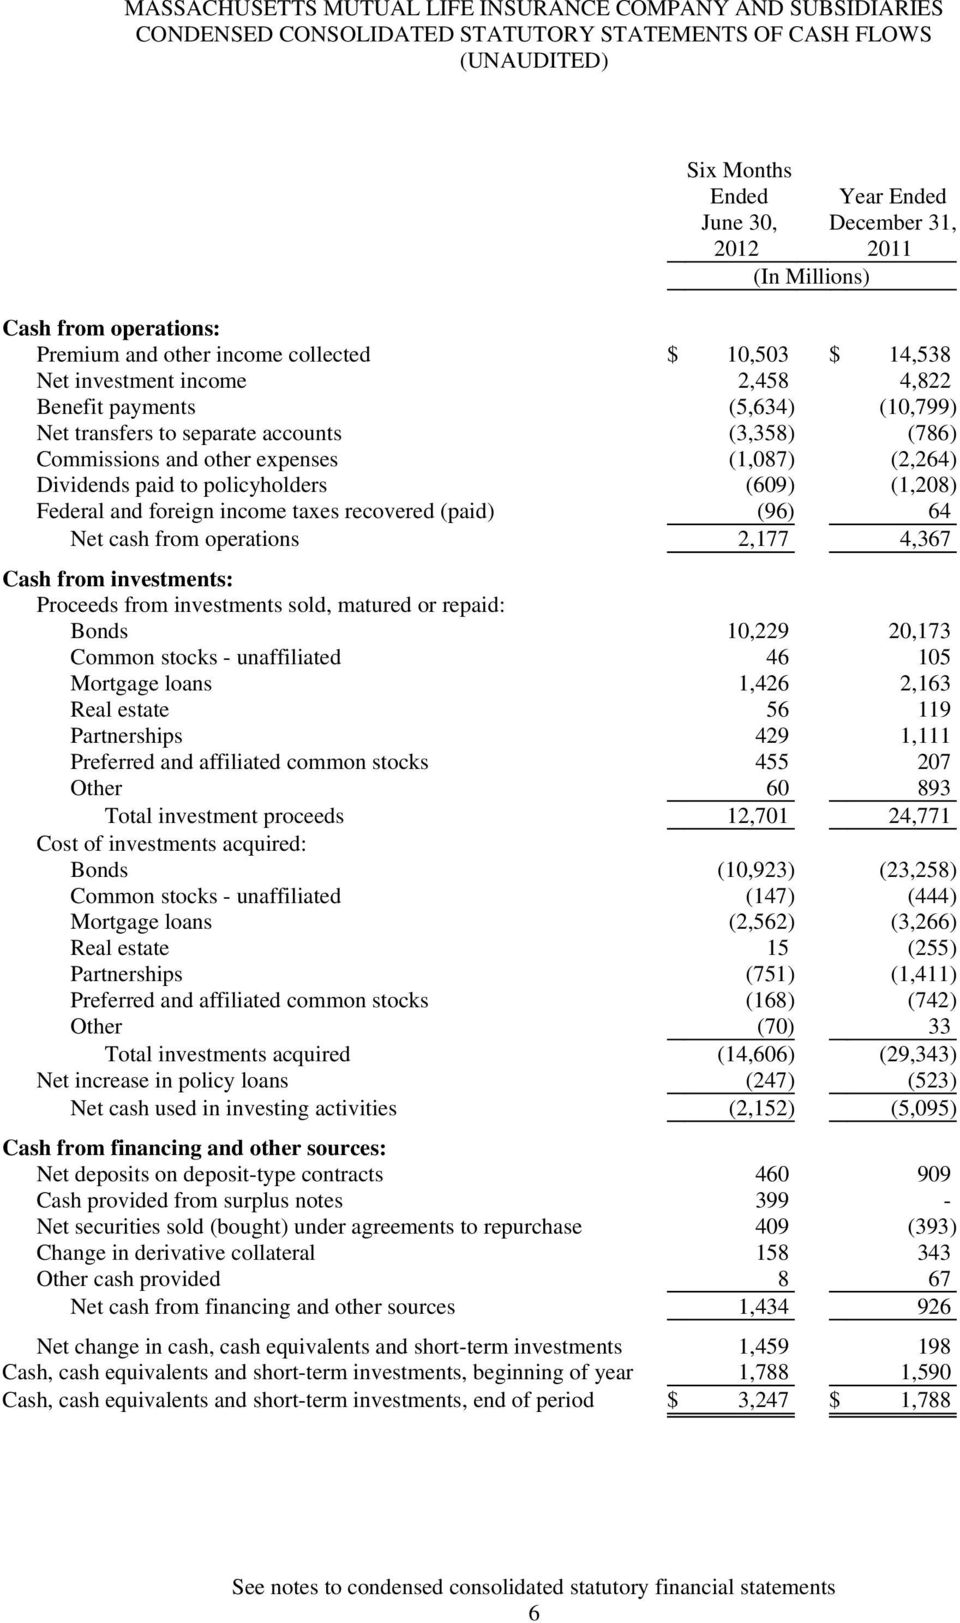 (1,208) Federal and foreign income taxes recovered (paid) (96) 64 Net cash from operations 2,177 4,367 Cash from investments: Proceeds from investments sold, matured or repaid: Bonds 10,229 20,173